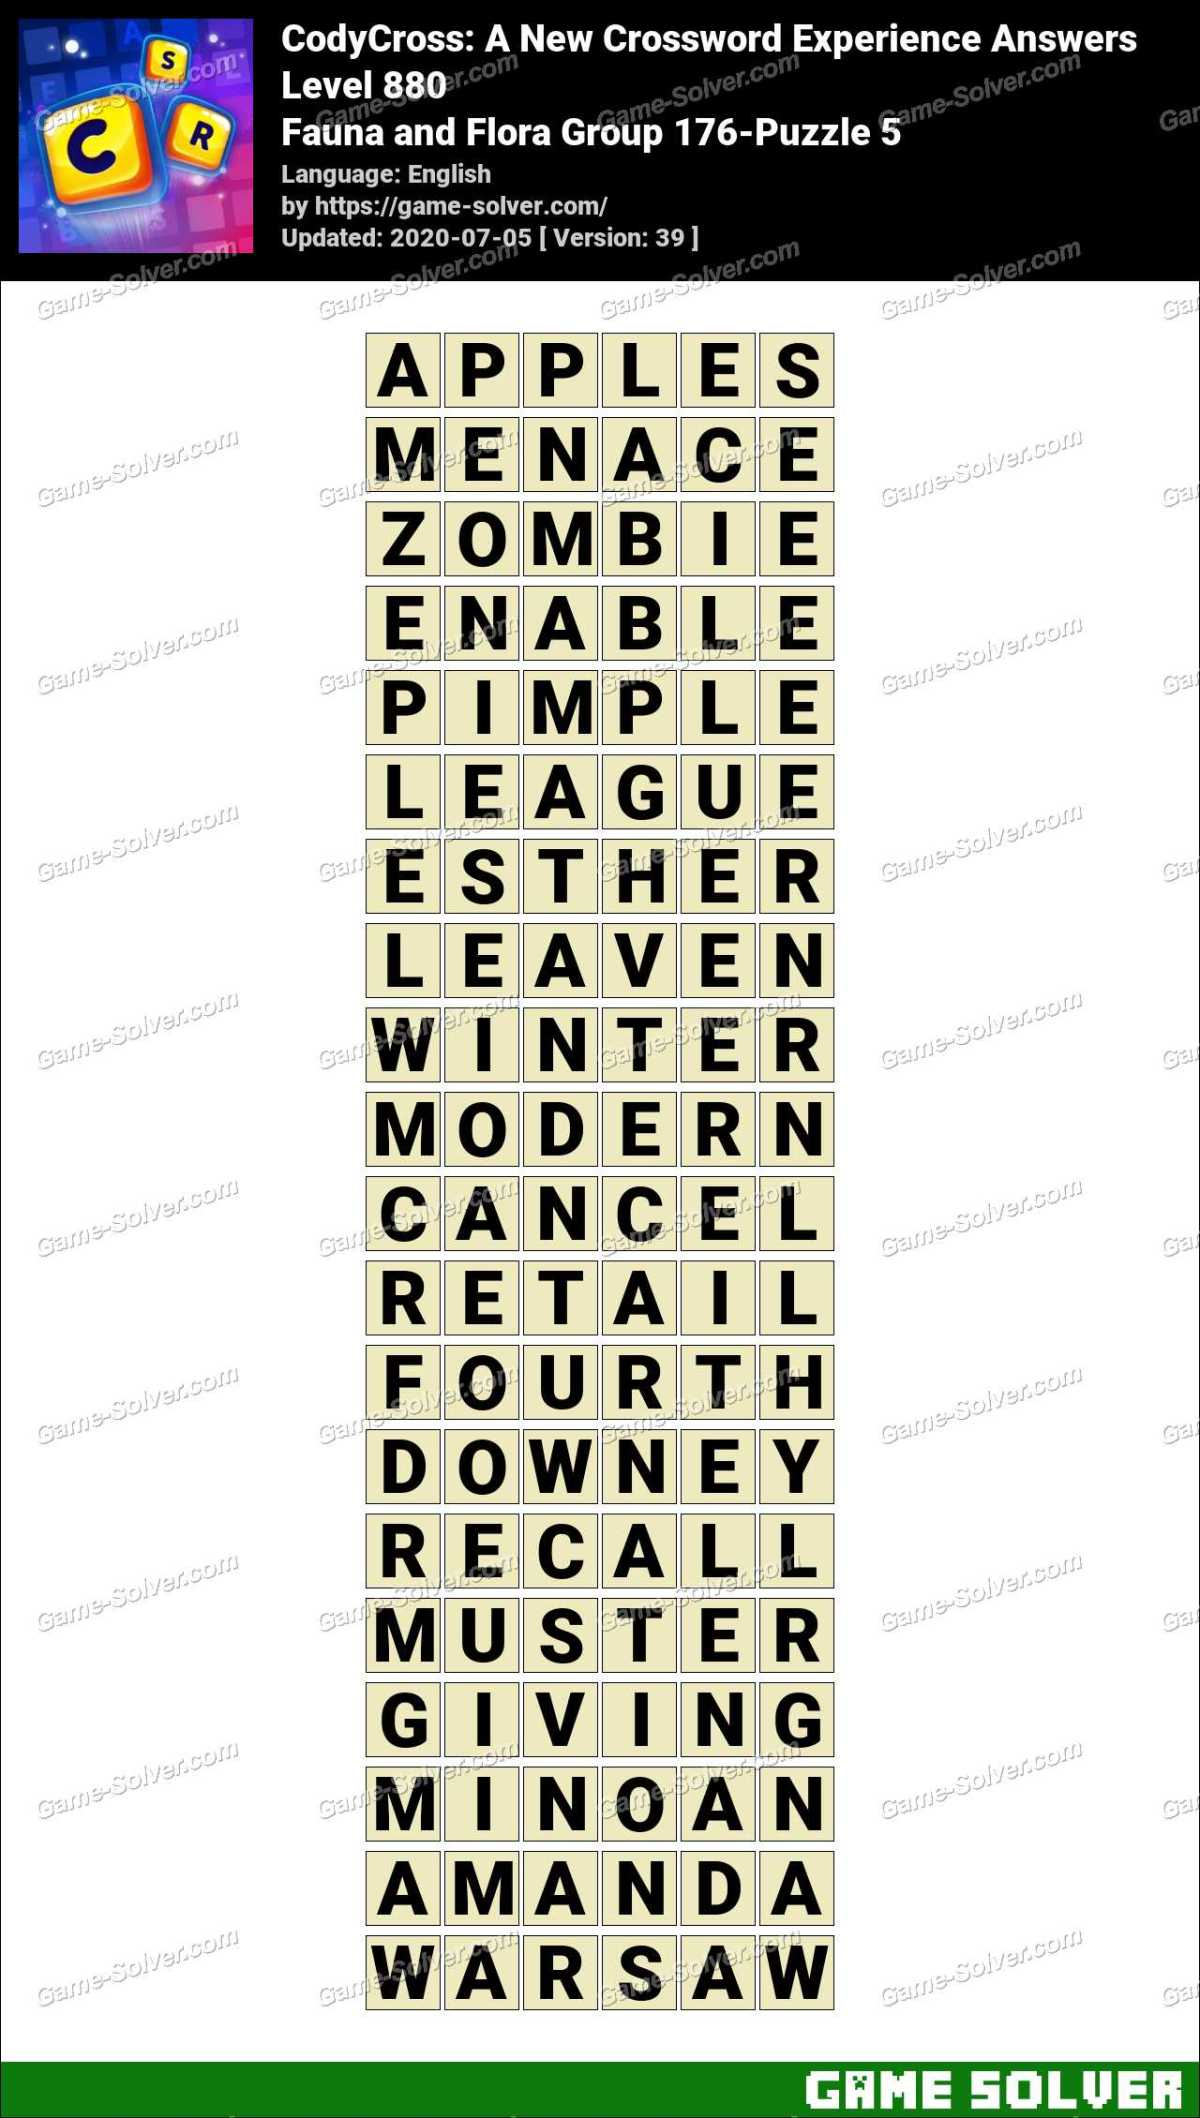 CodyCross Fauna and Flora Group 176-Puzzle 5 Answers